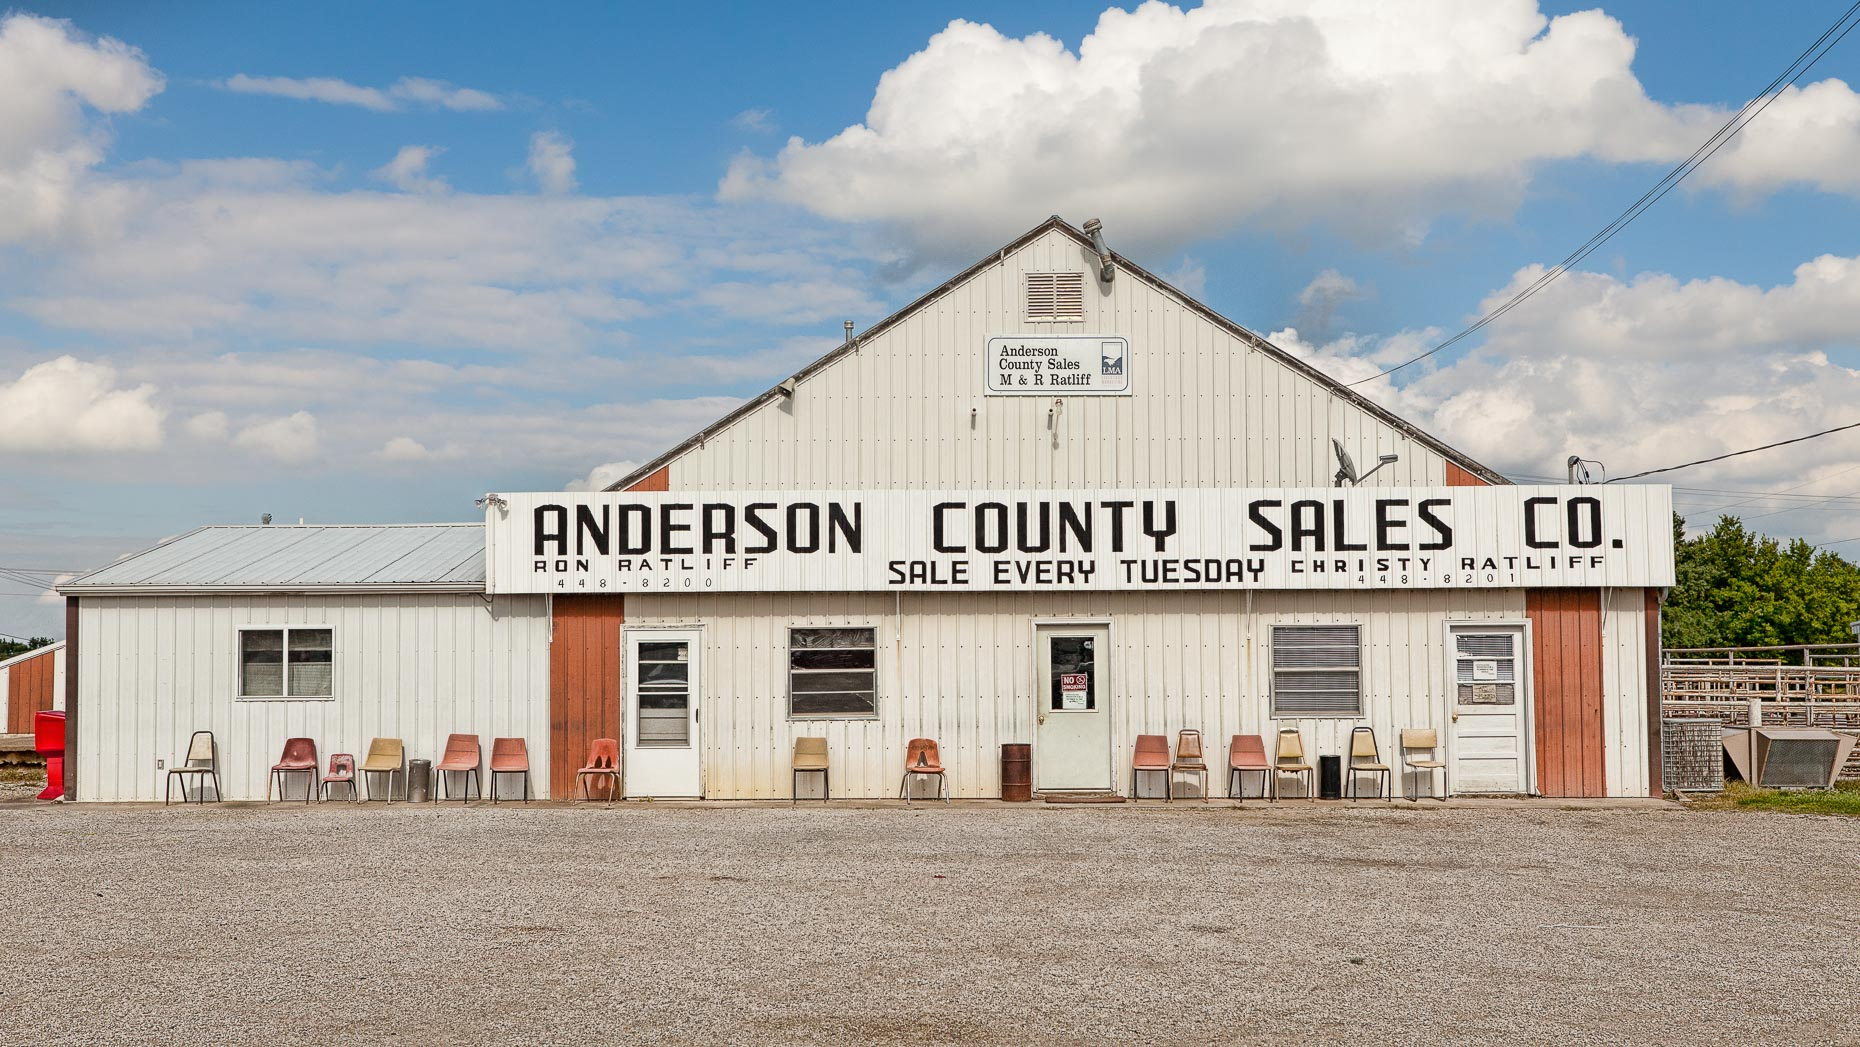 Chairs in front of ANDERSON COUNTY SALES CO. building by David Zaitz